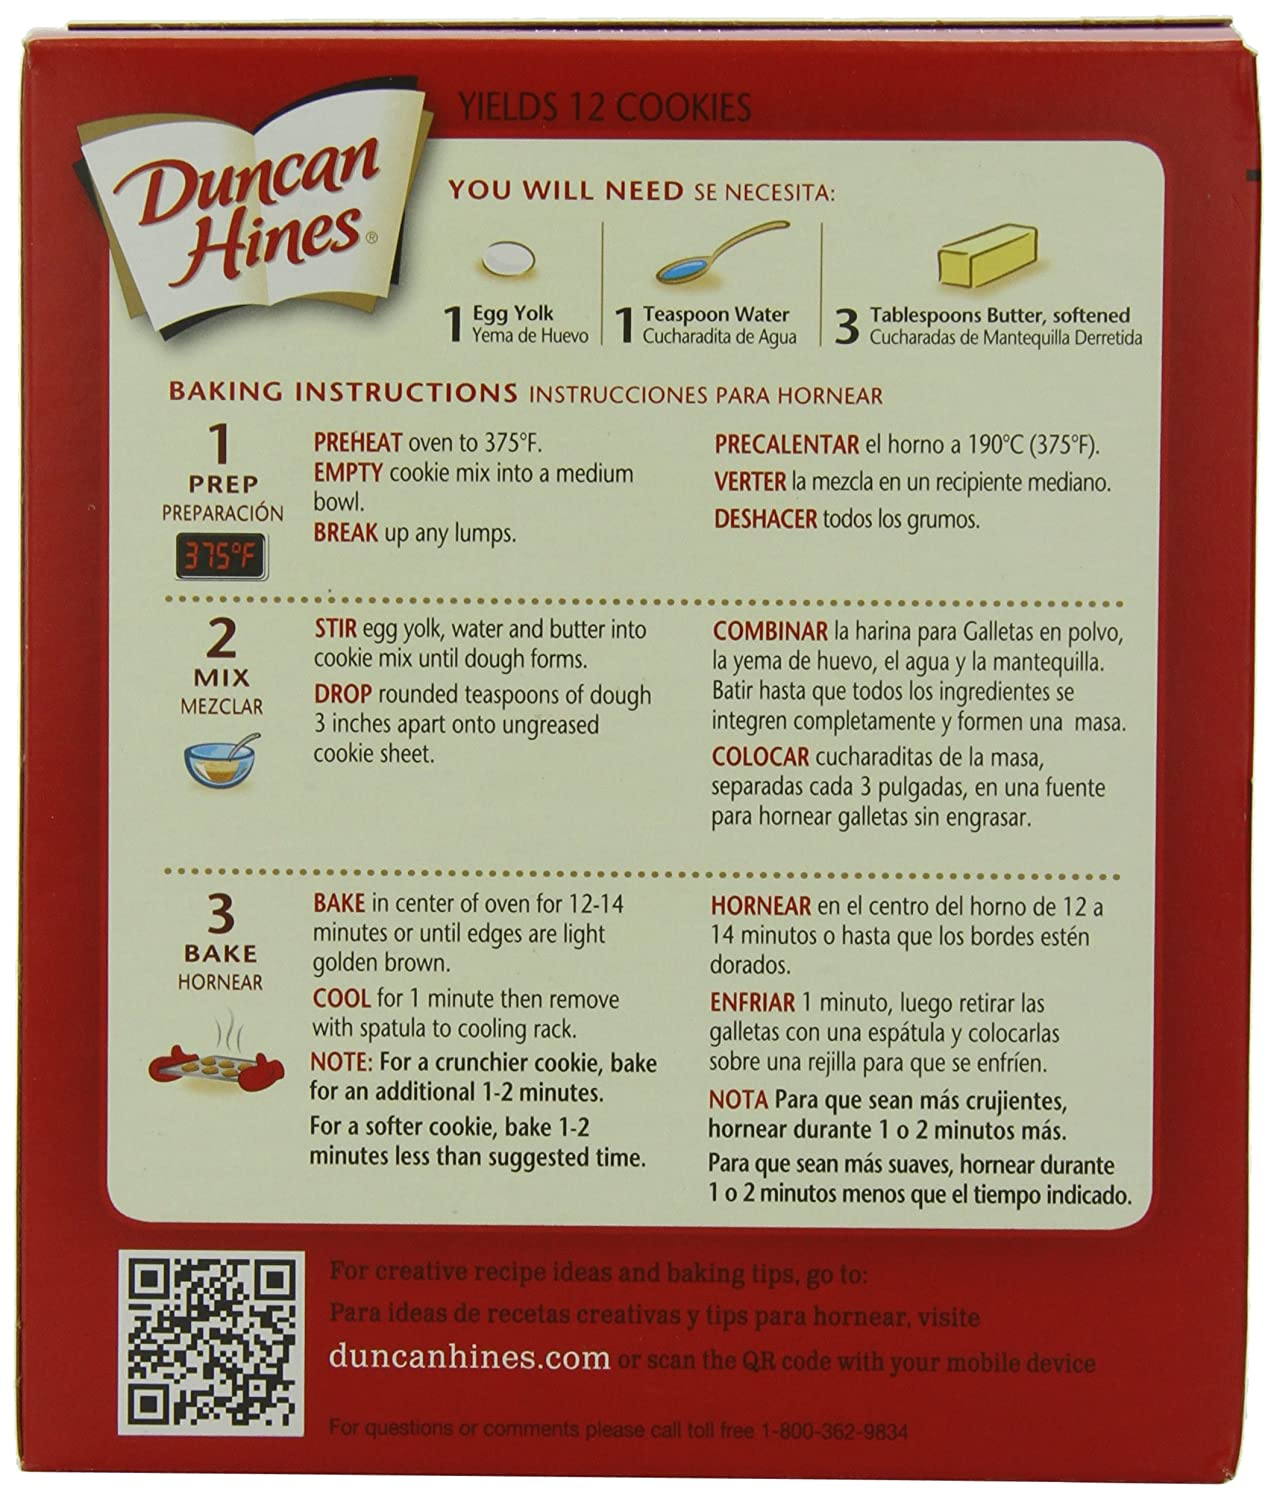 Amazon.com : Duncan Hines Snack Cookie Mix, Chocolate Chip, 6.7-Ounce (Pack of 12) : Grocery & Gourmet Food